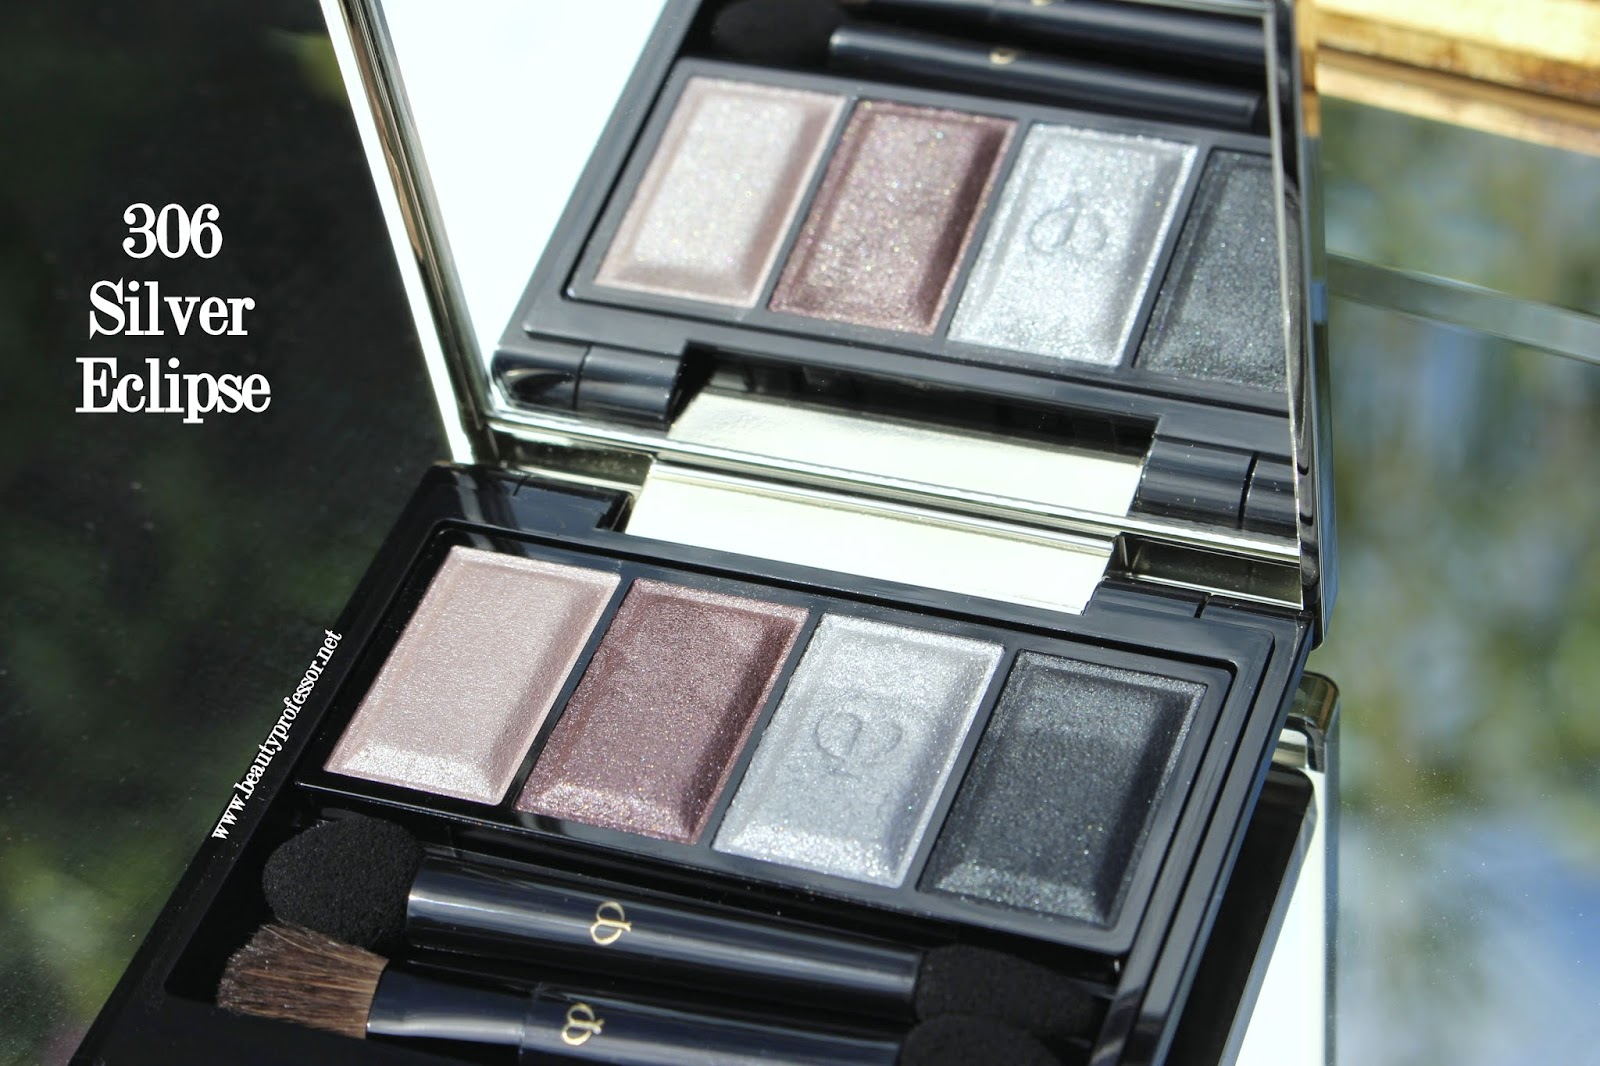 Cle de peau eye color quad 306 silver eclipse swatches